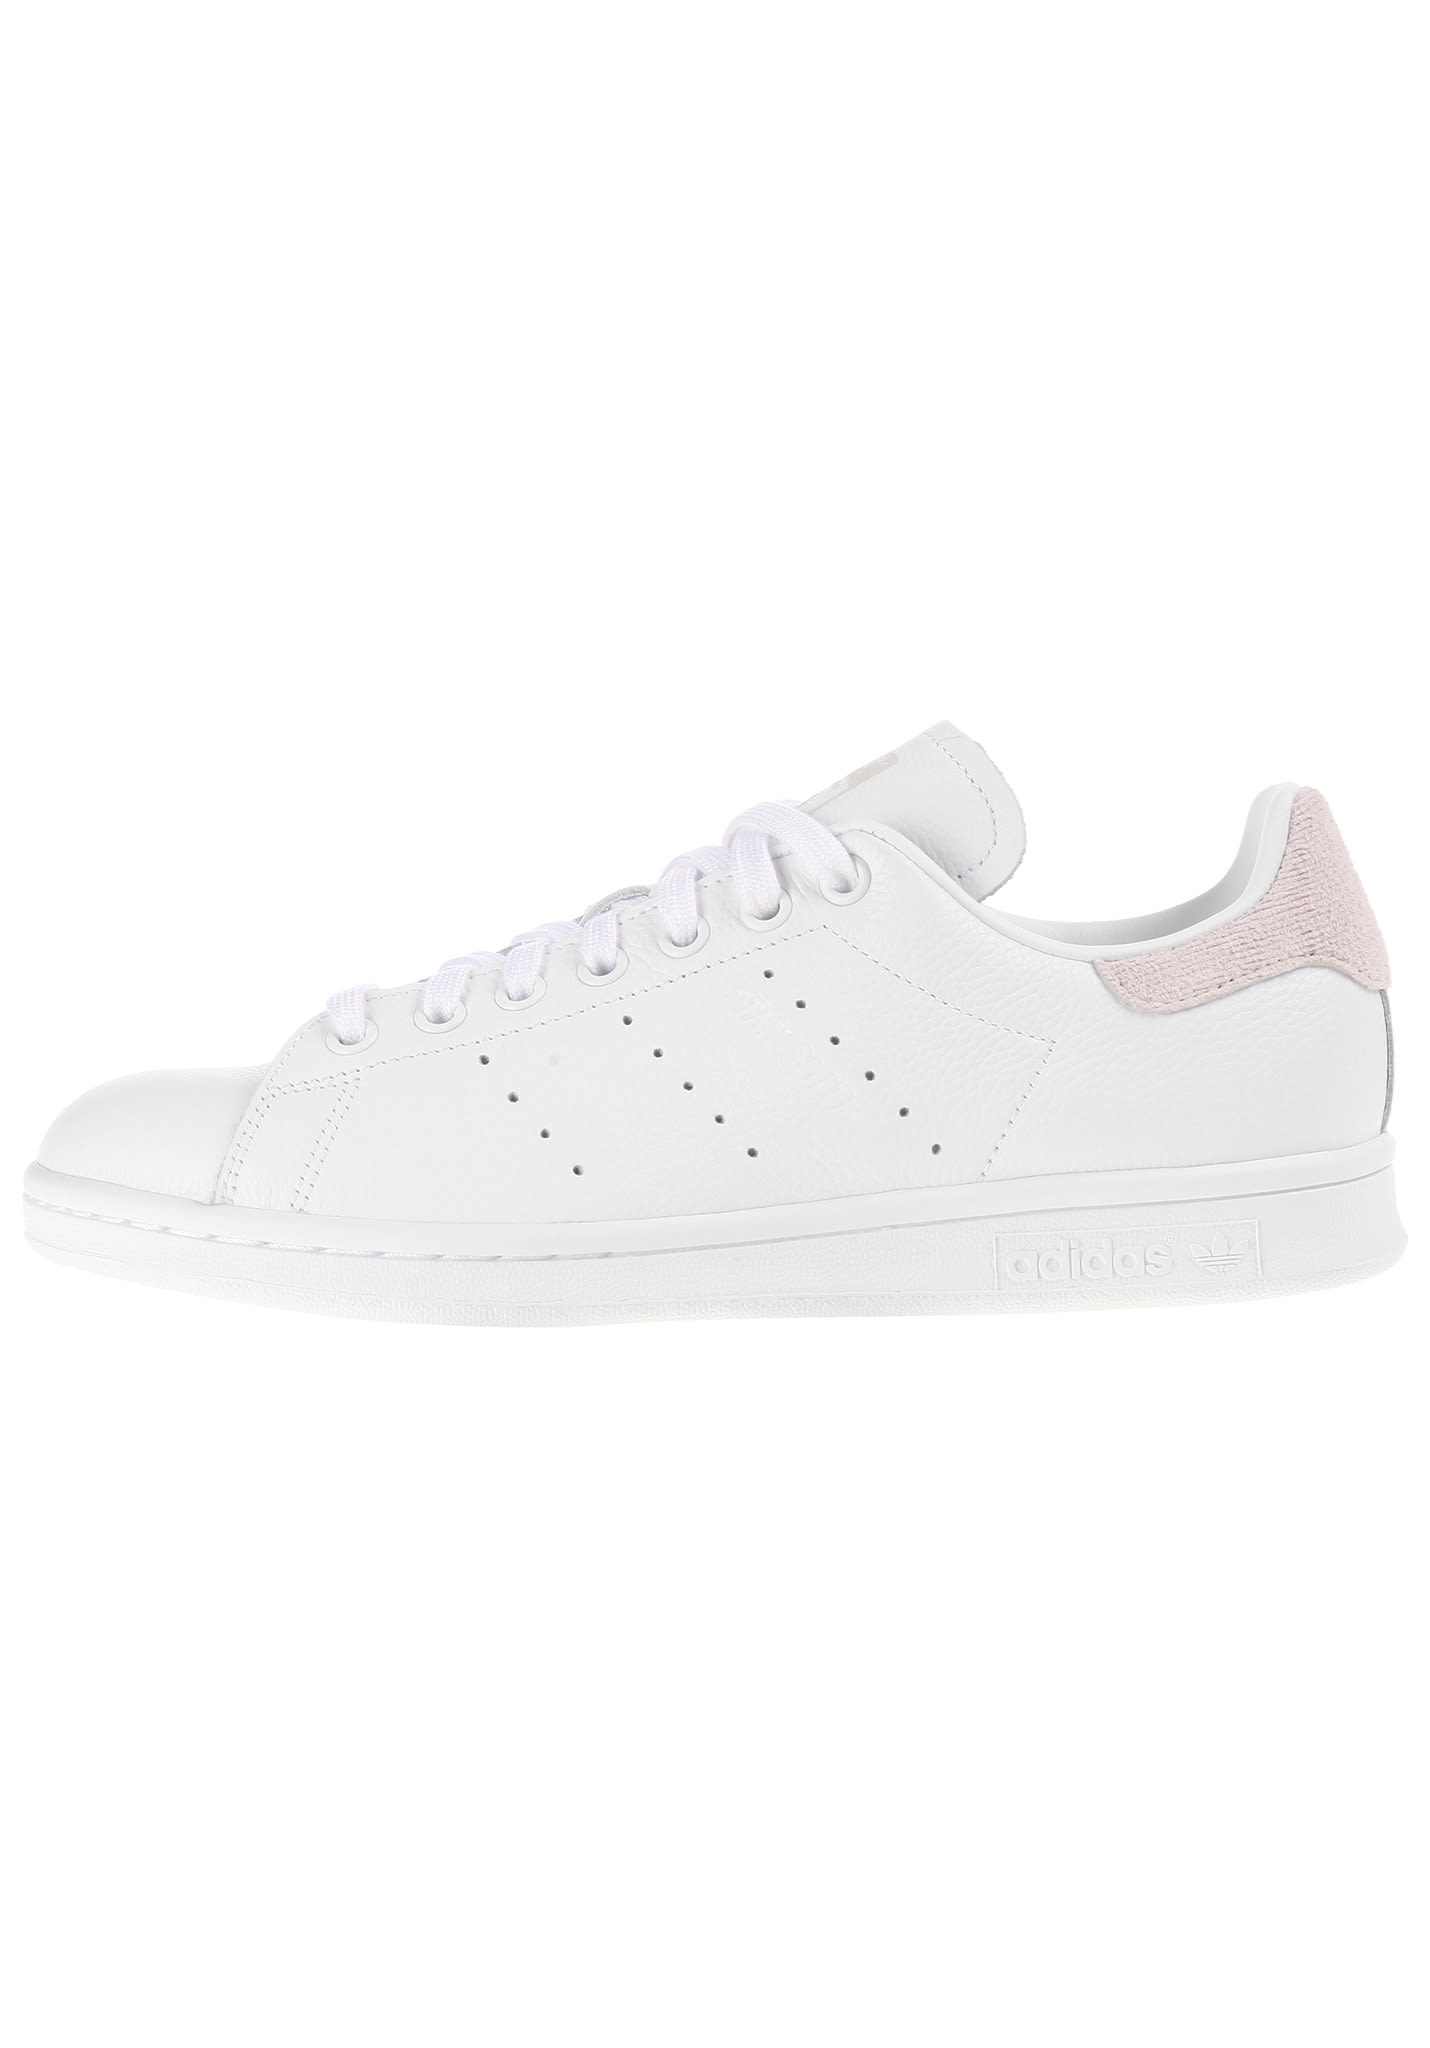 save off 9984a b0be6 ADIDAS ORIGINALS Stan Smith - Sneakers for Women - White